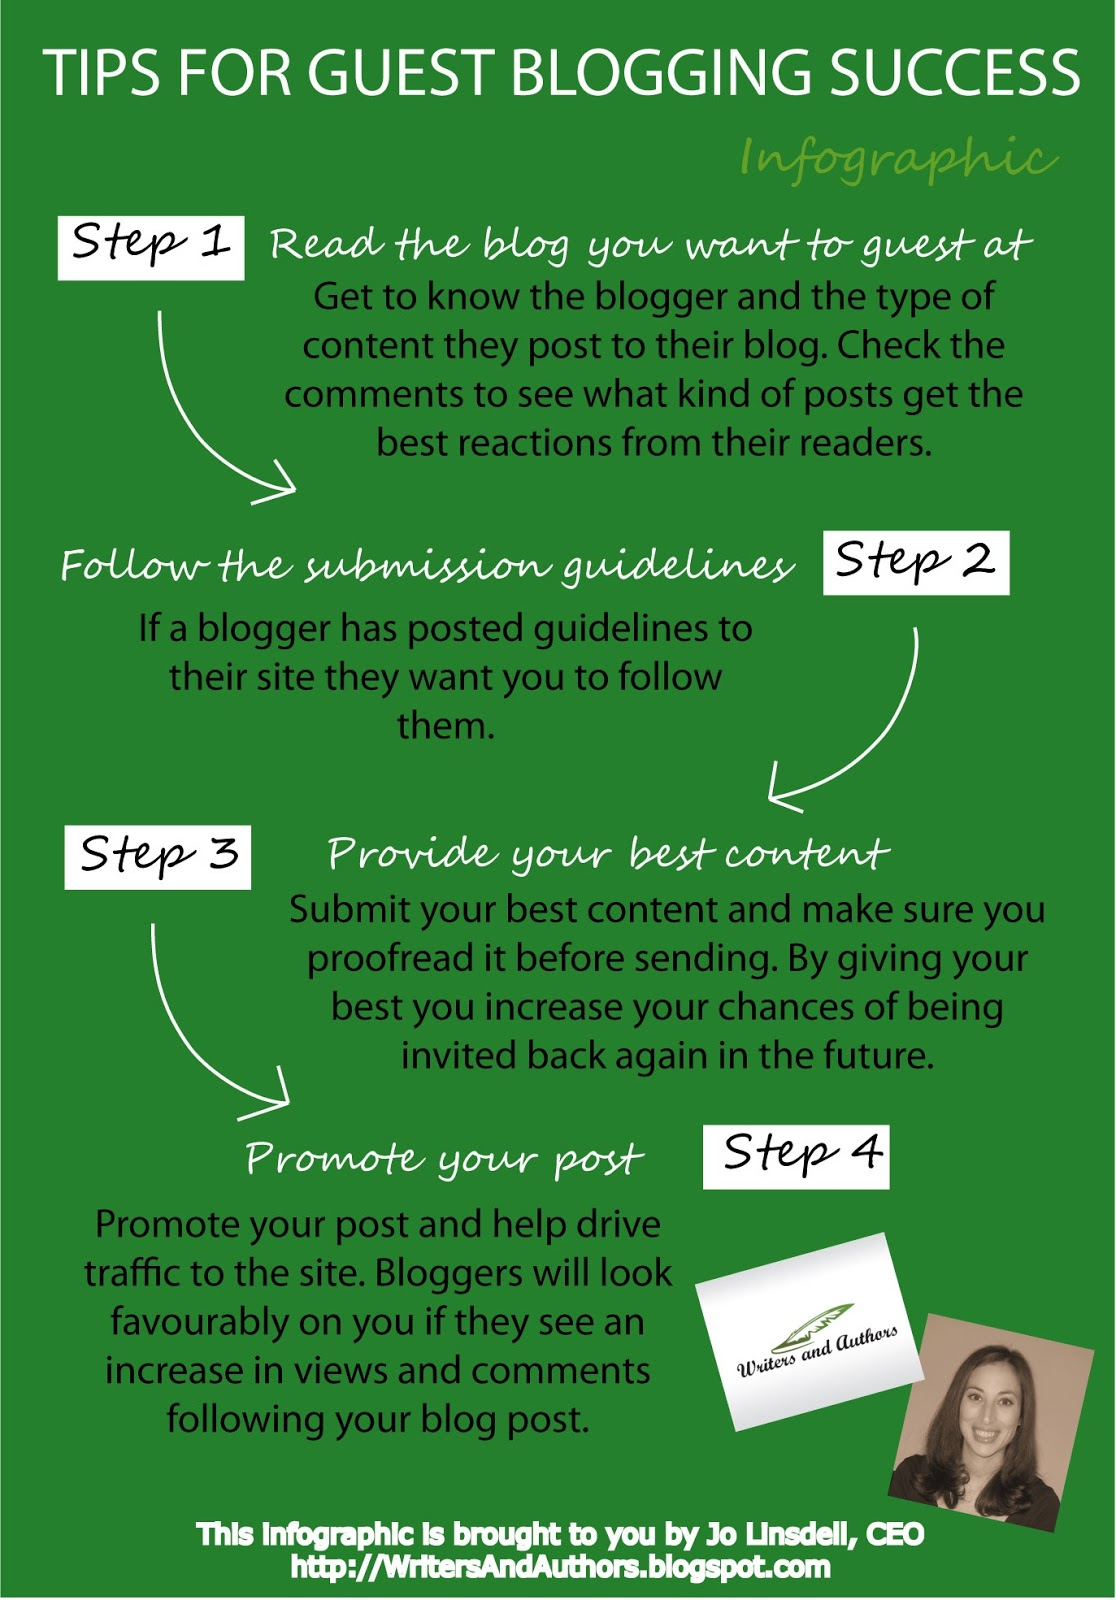 Tips for Guest Blogging Success | Writers and Authors